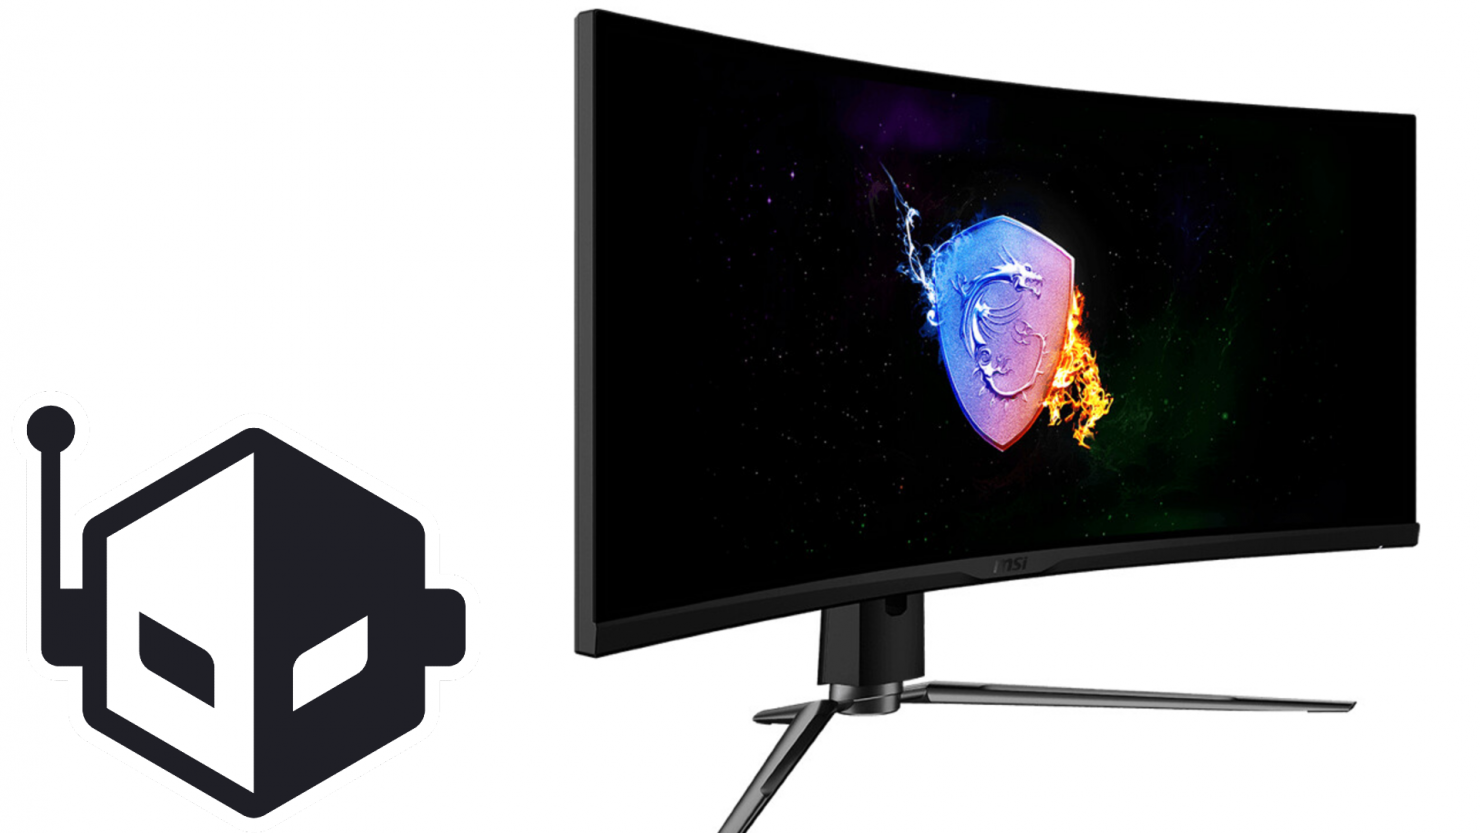 msi-introduces-the-artymis-323cqr-and-273cqr-curved-gaming-monitors